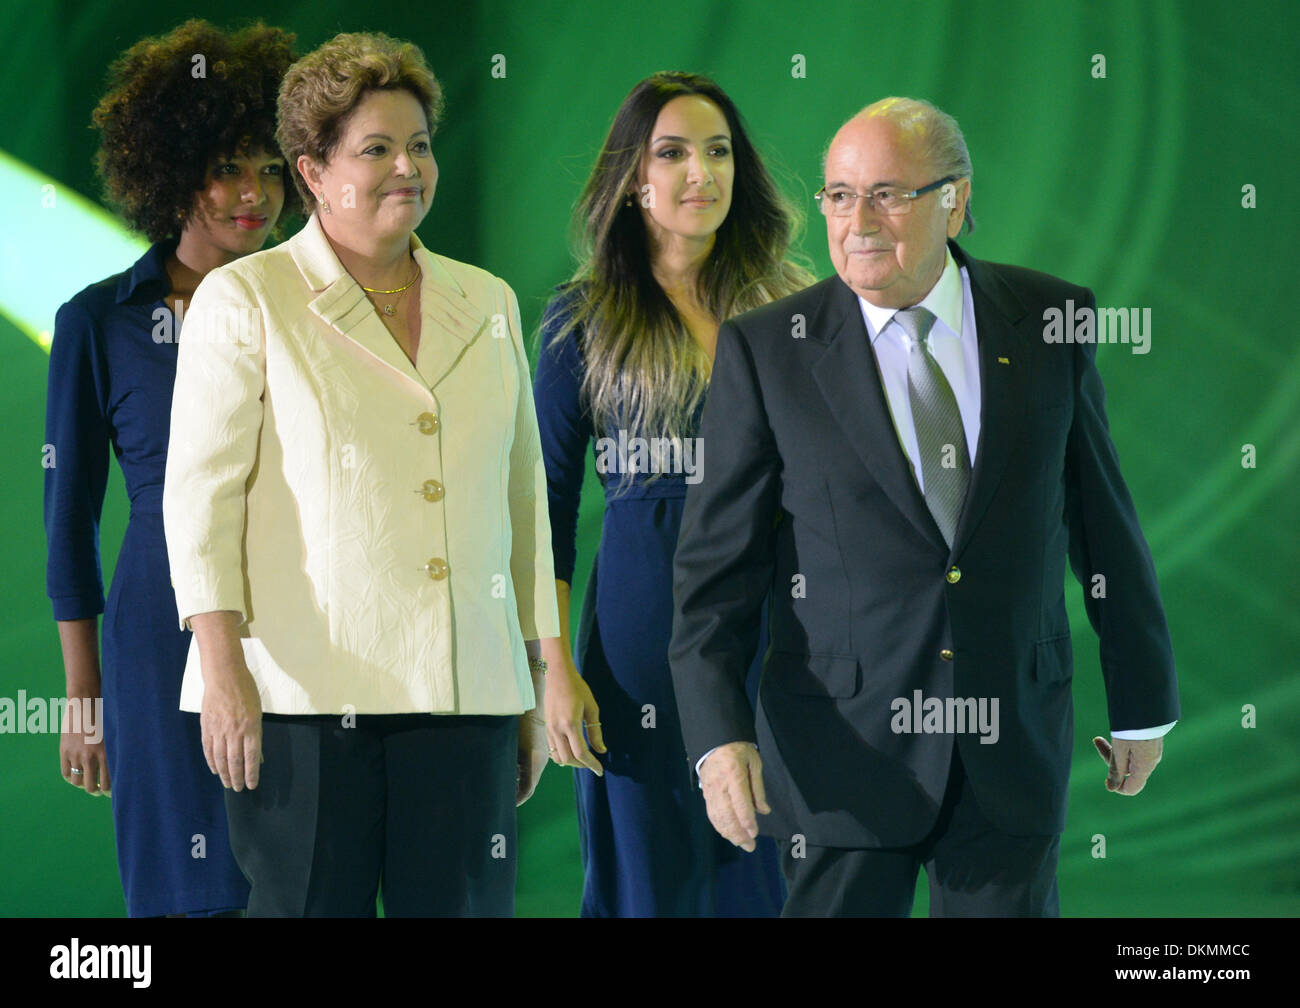 Costa do Sauipe, Bahia, Brazil. 06th Dec, 2013. Host Fernanda Lima (R-L) welcomes FIFA-president Sepp Blatter and President of Brazil, Dilma Rousseff, on the stage during the final draw for the preliminary round groups of the FIFA World Cup 2014 in Costa do Sauipe, Bahia, Brazil, 06 December 2013. Photo: Marcus Brandt/dpa/Alamy Live News - Stock Image